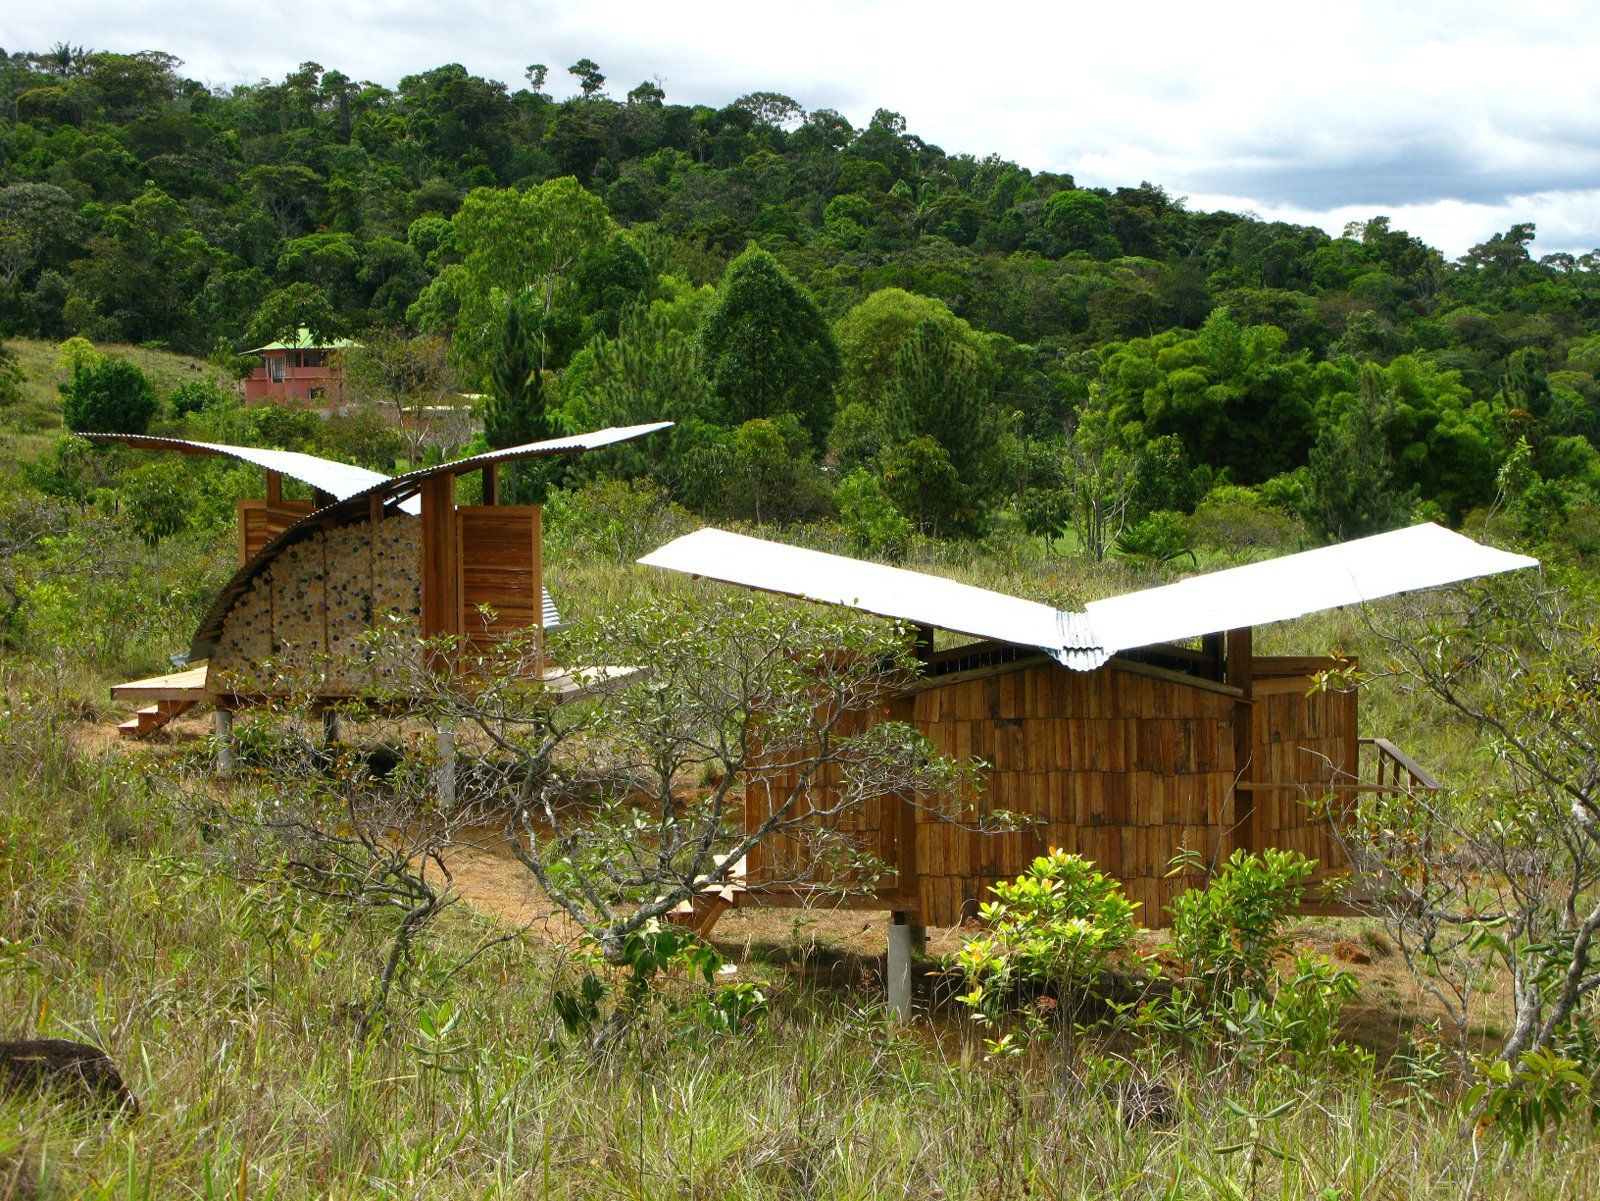 Two housing models perch lightly in a field, both featuring gently curved, rainwater-catching butterfly roofloines.  Photo 5 of 13 in Venezuela's Eco Cabanas